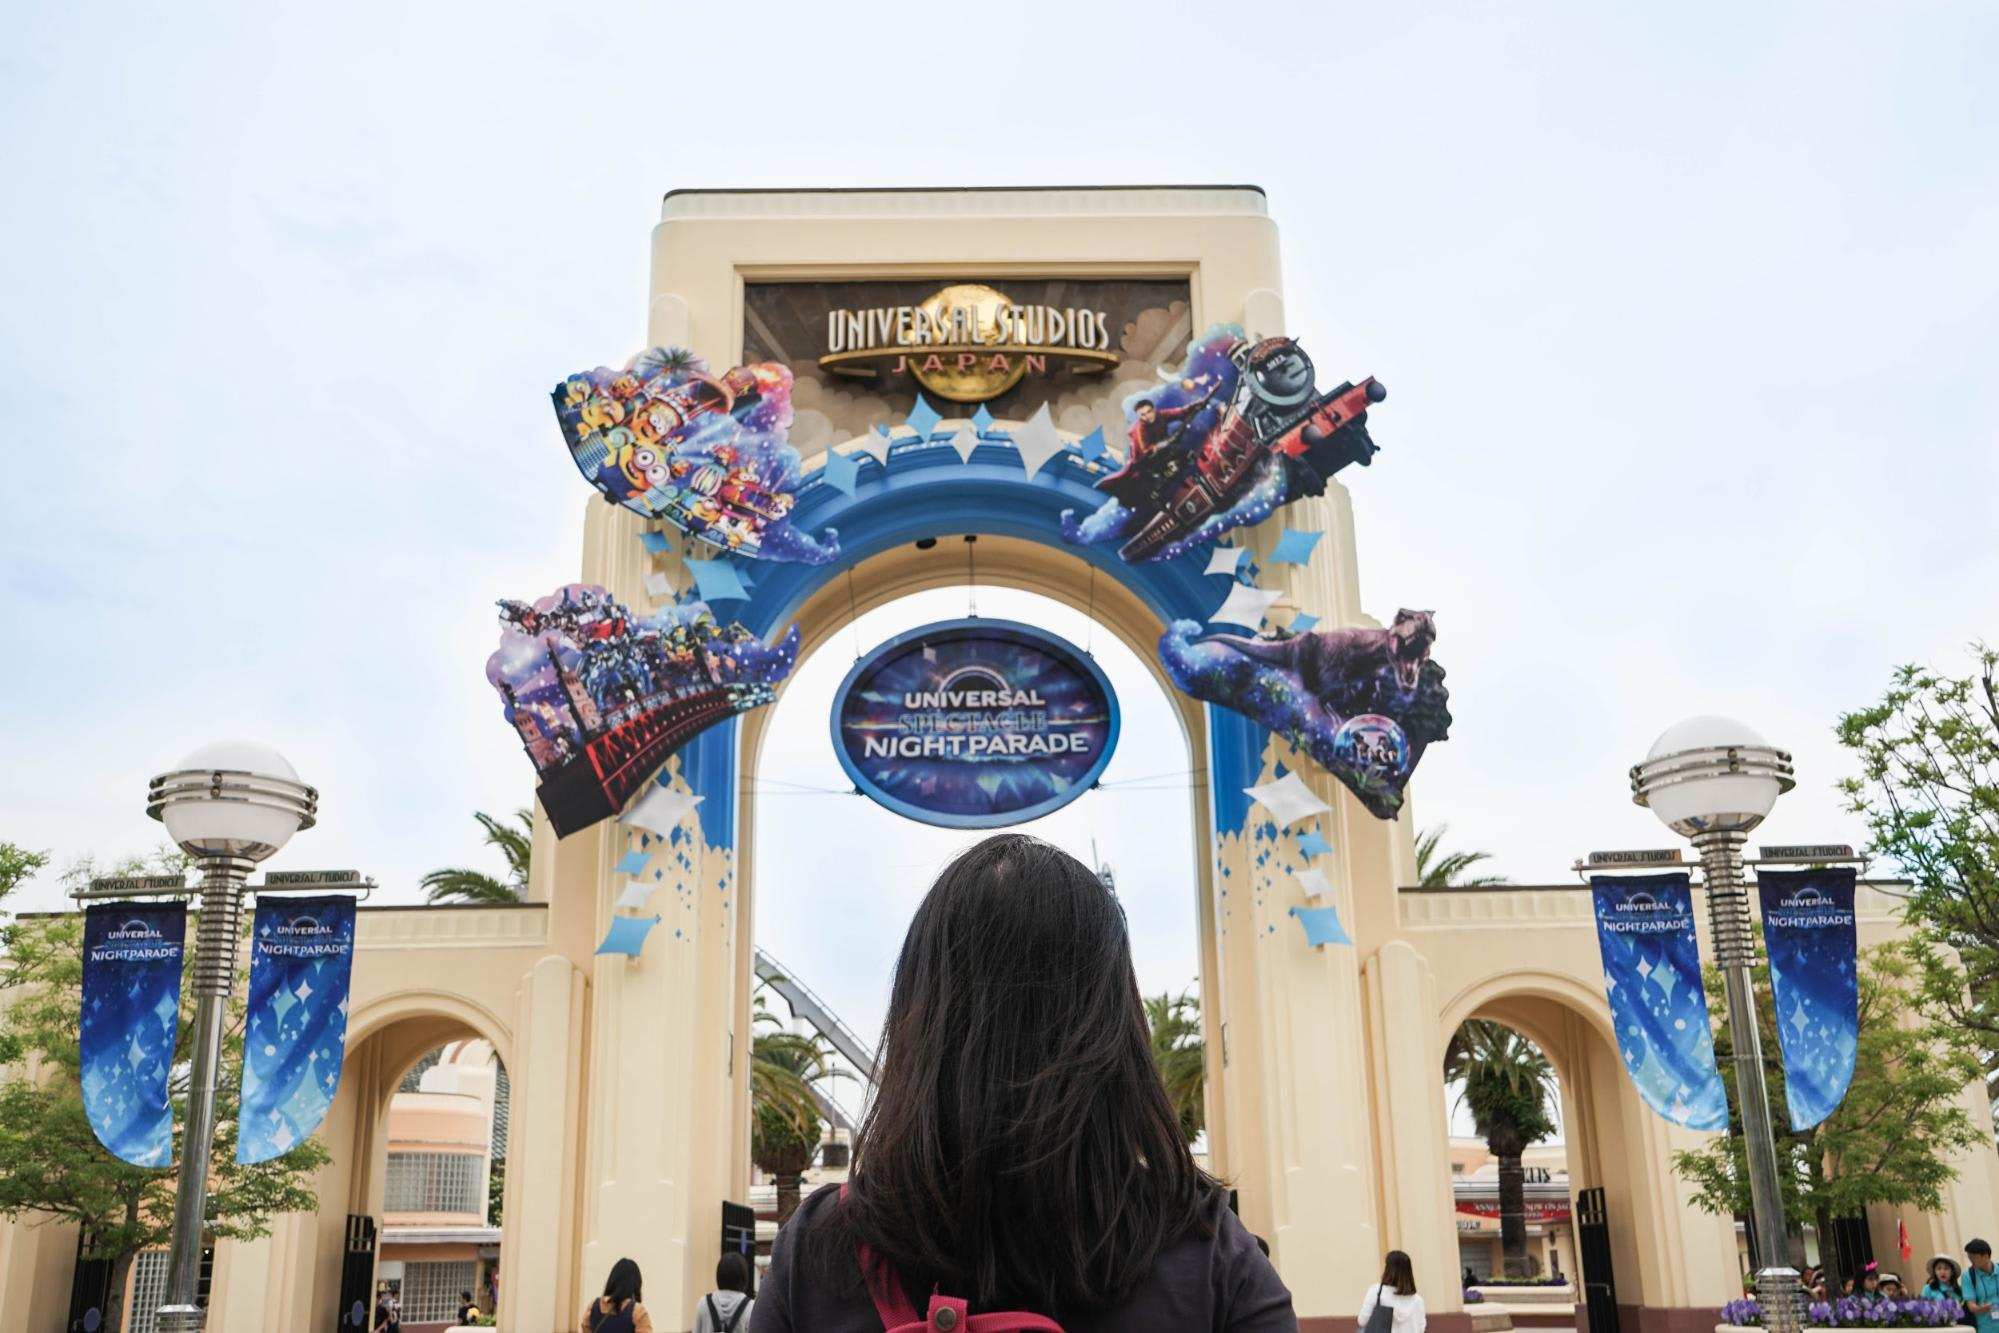 Counting Down In Universal Studios Japan Is The Grand Finale